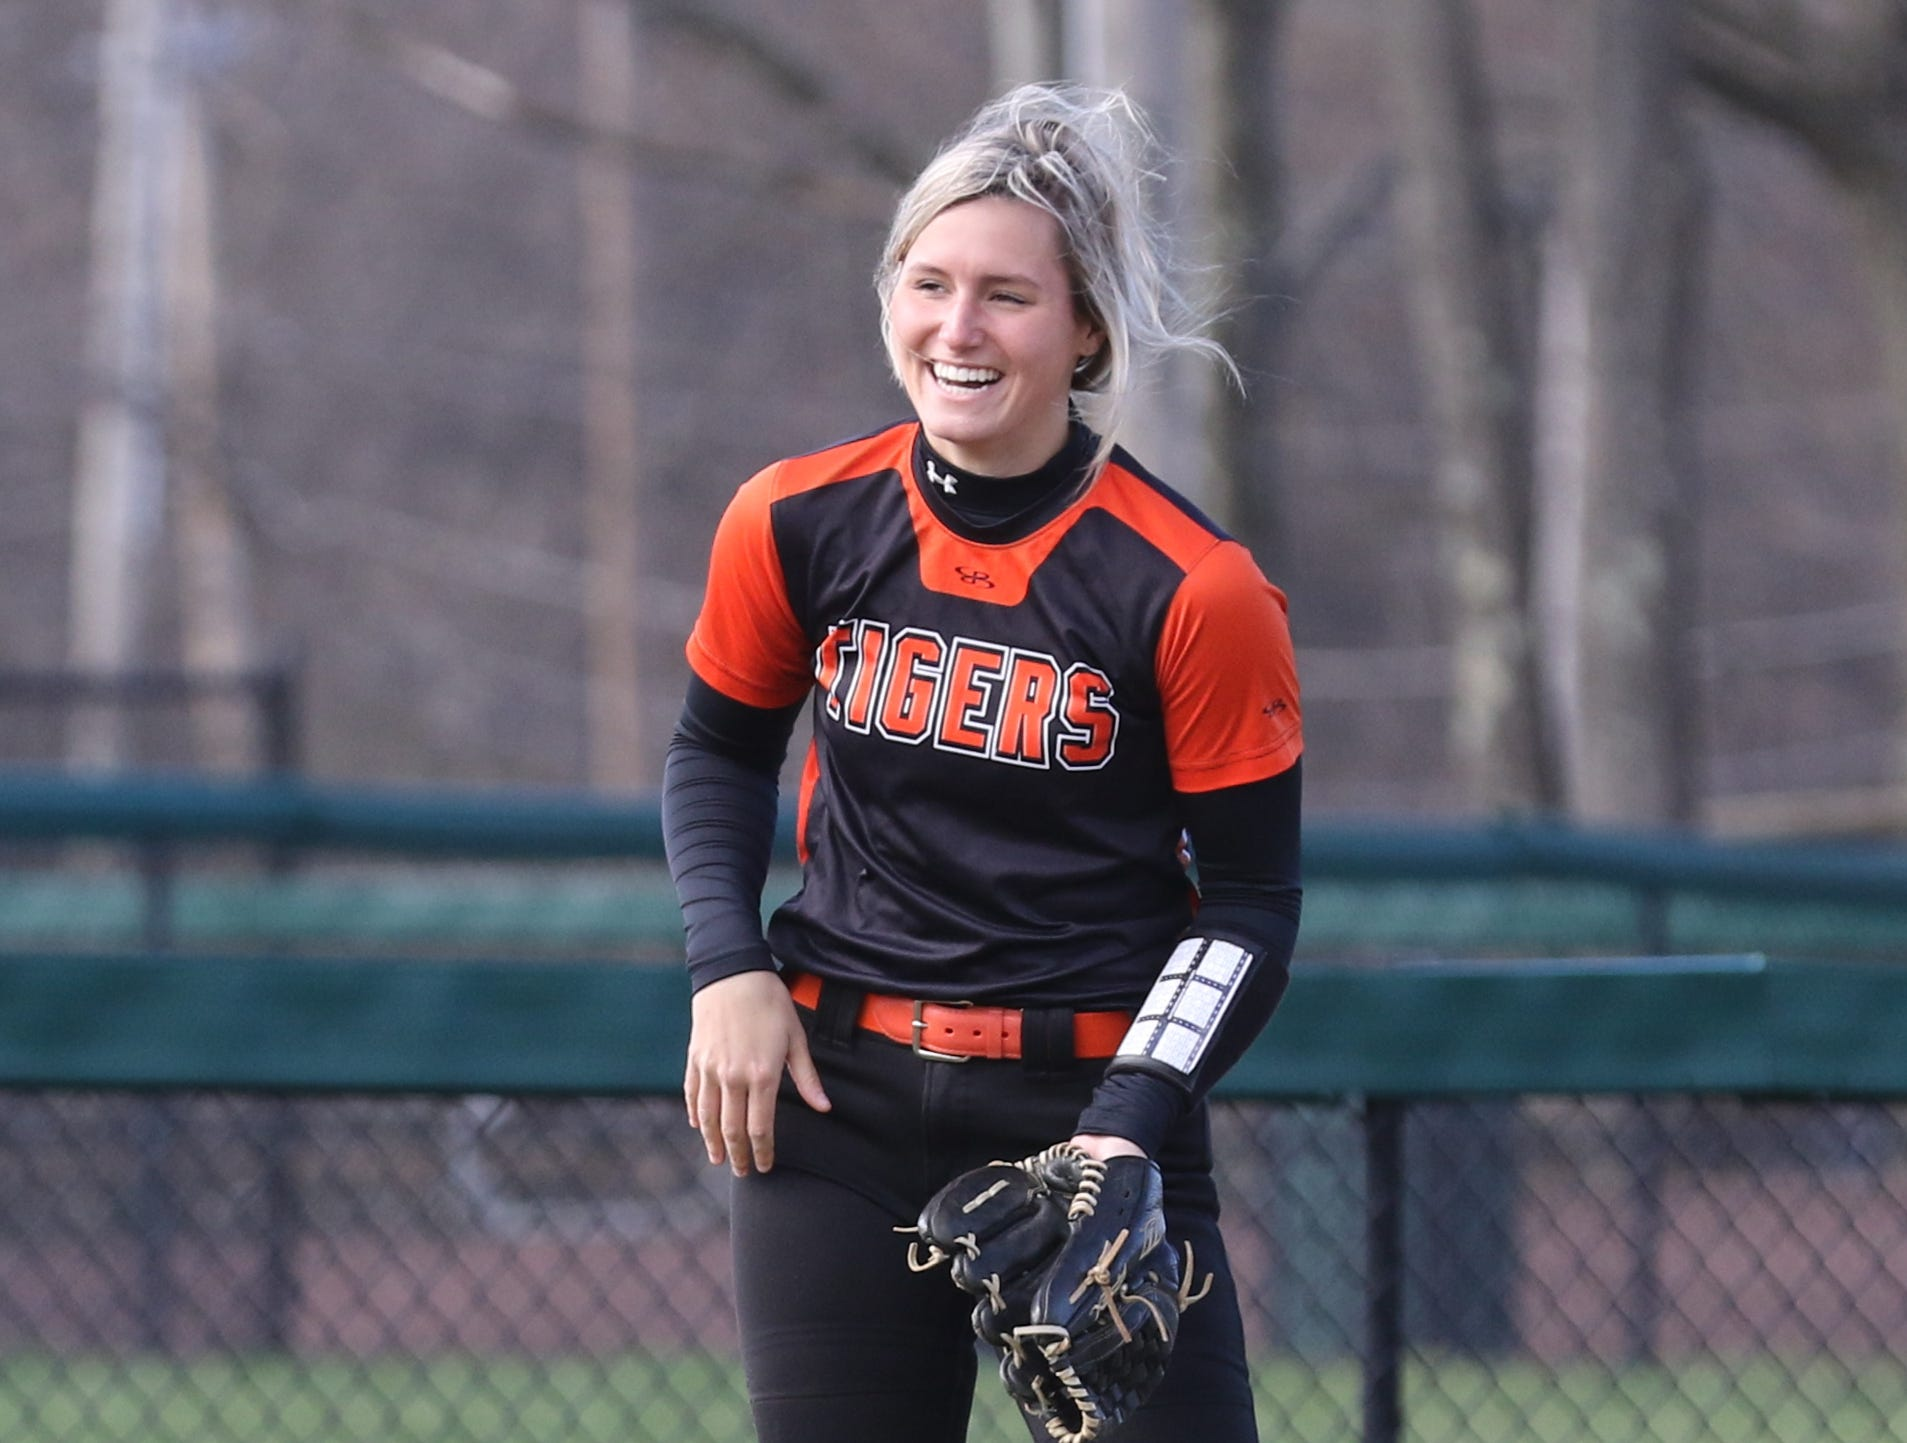 Hackettstown centerfielder Molly O'Brien after making a catch to get a double play at first base.